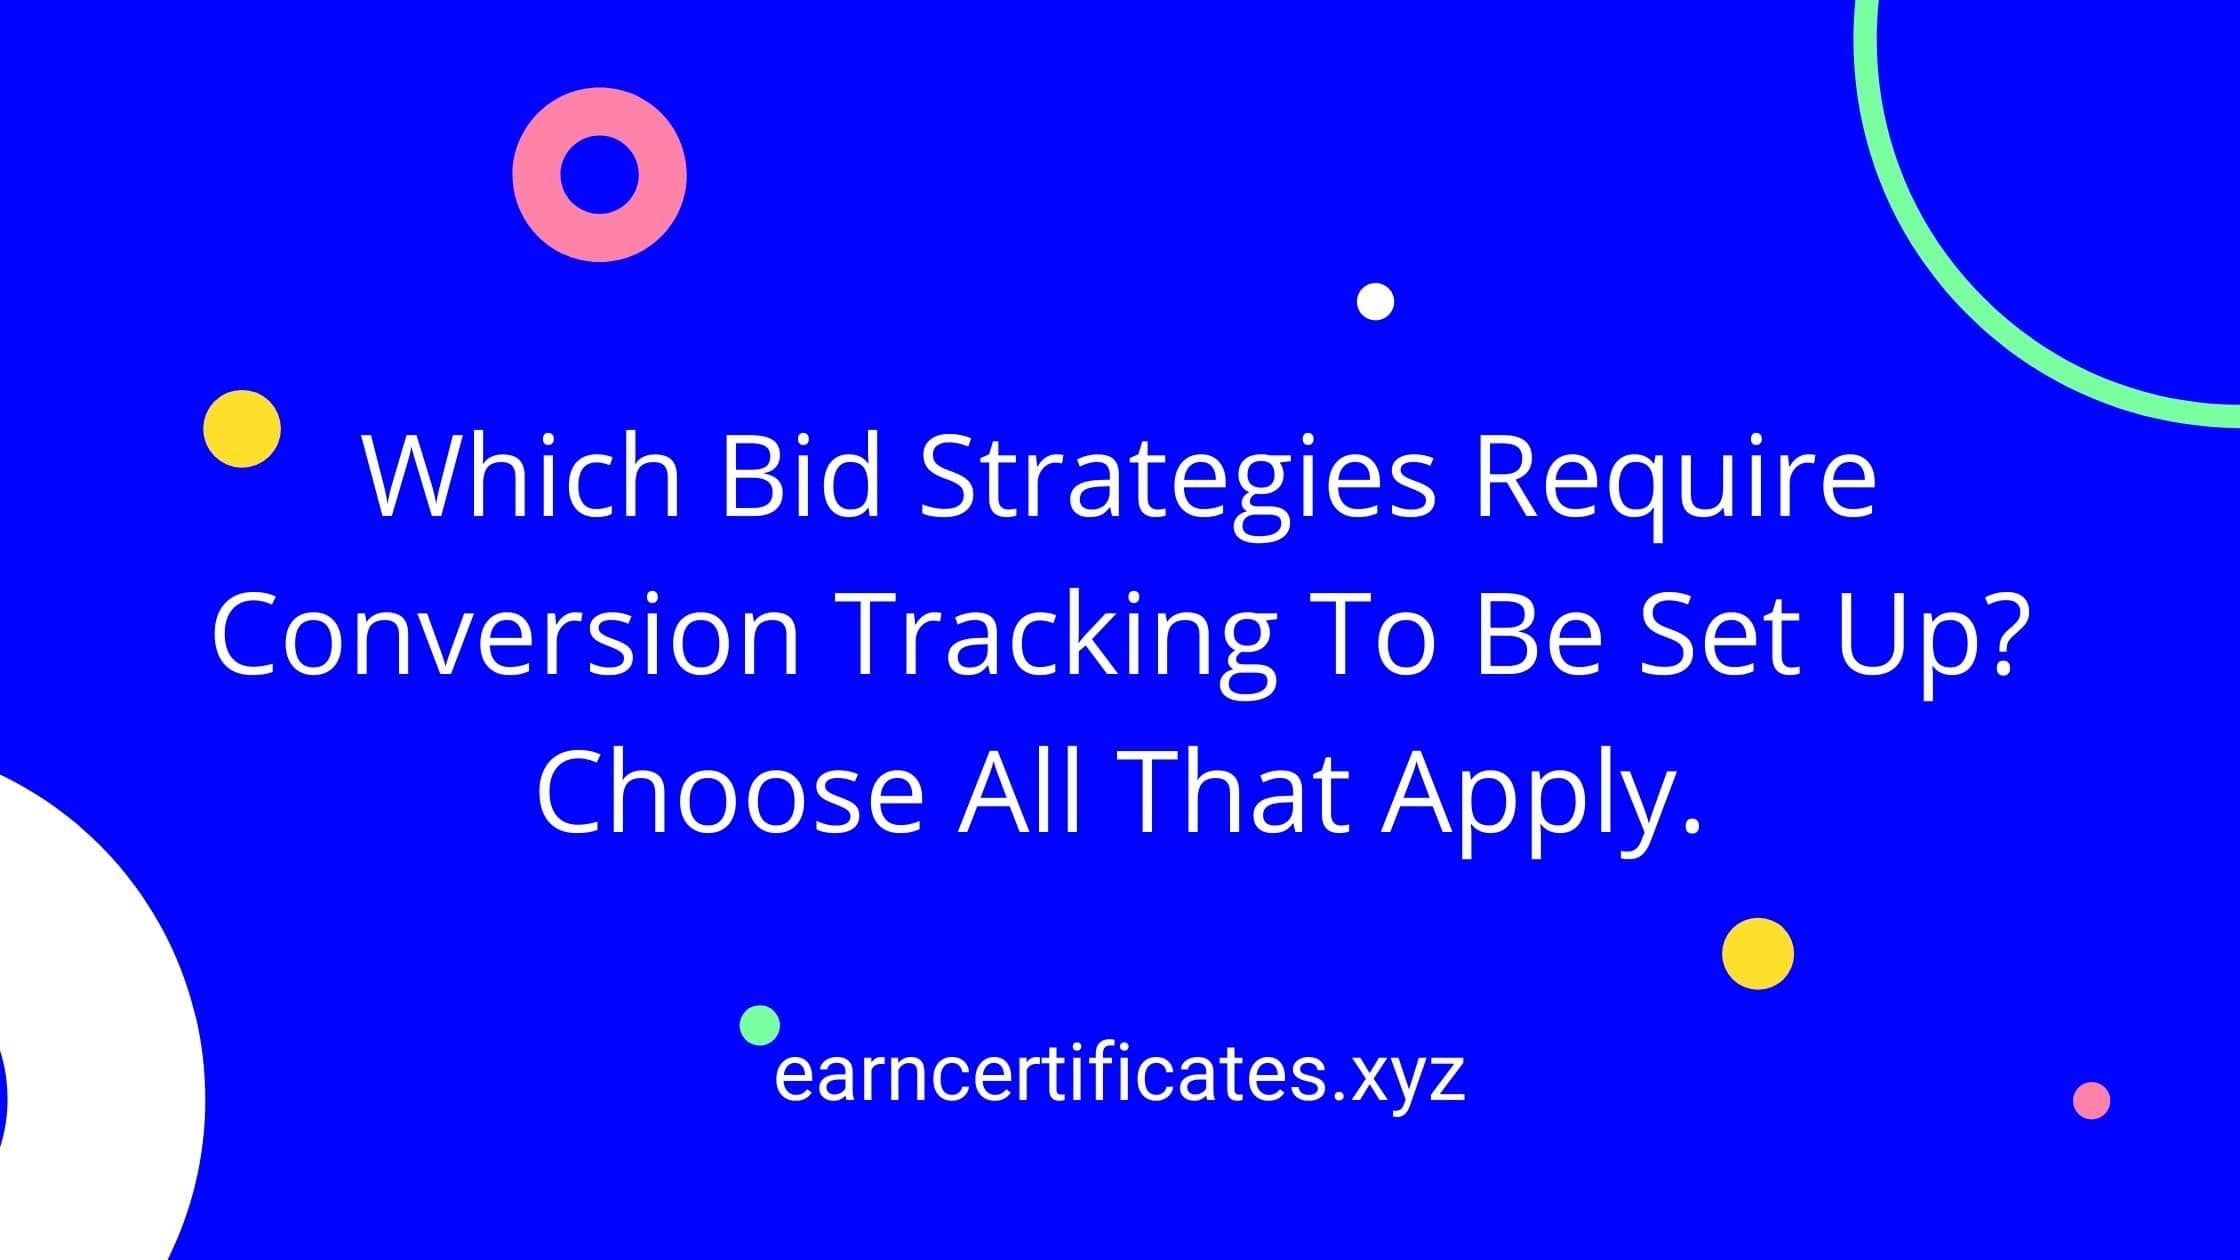 Which Bid Strategies Require Conversion Tracking To Be Set Up? Choose All That Apply.